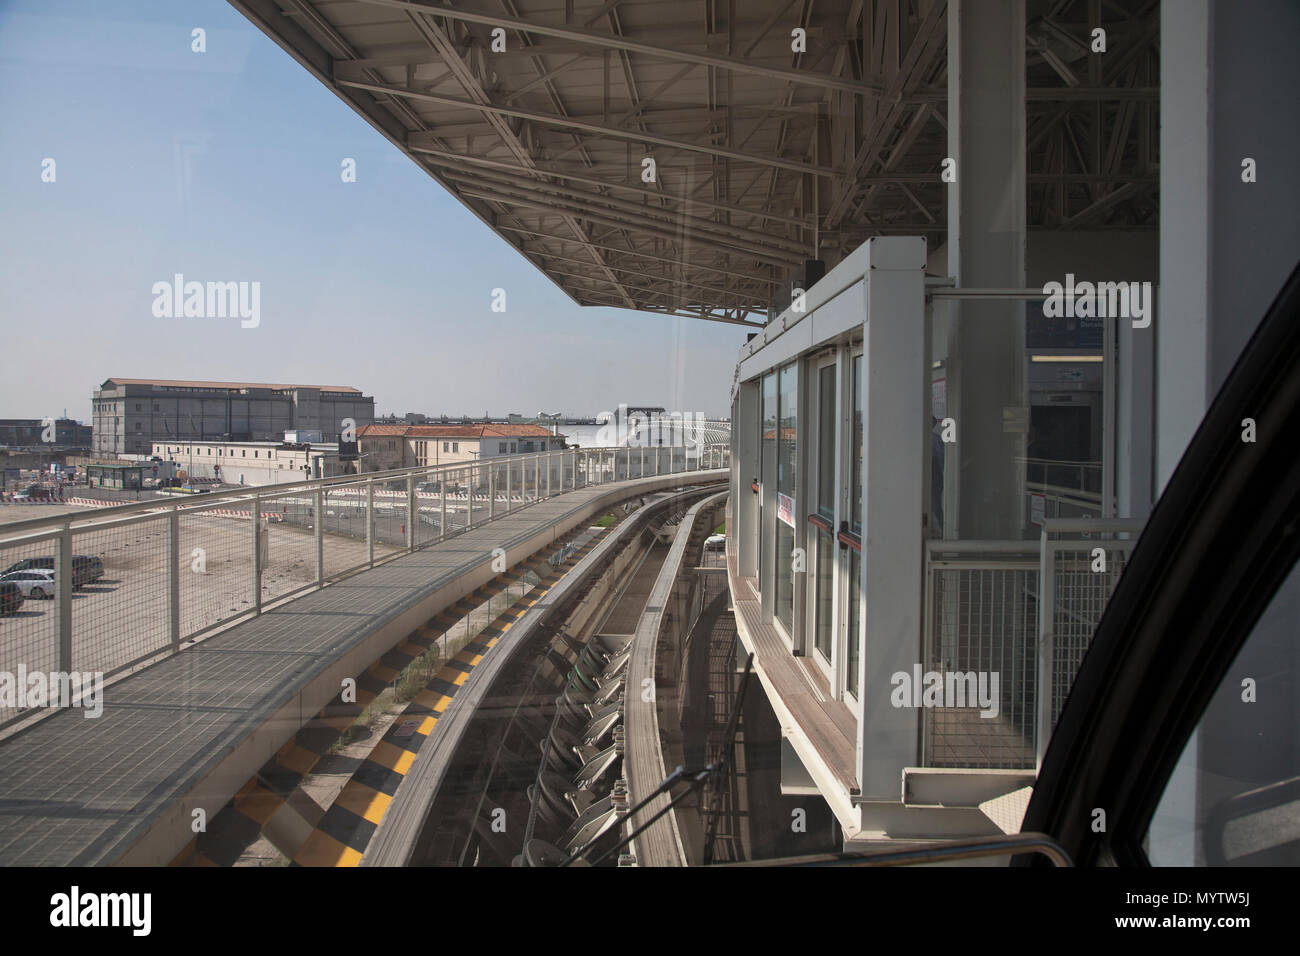 September 8, 2014- Venice, Italy: Tracks curve around a public transportation system that carries passengers around in Venice, Italy - Stock Image